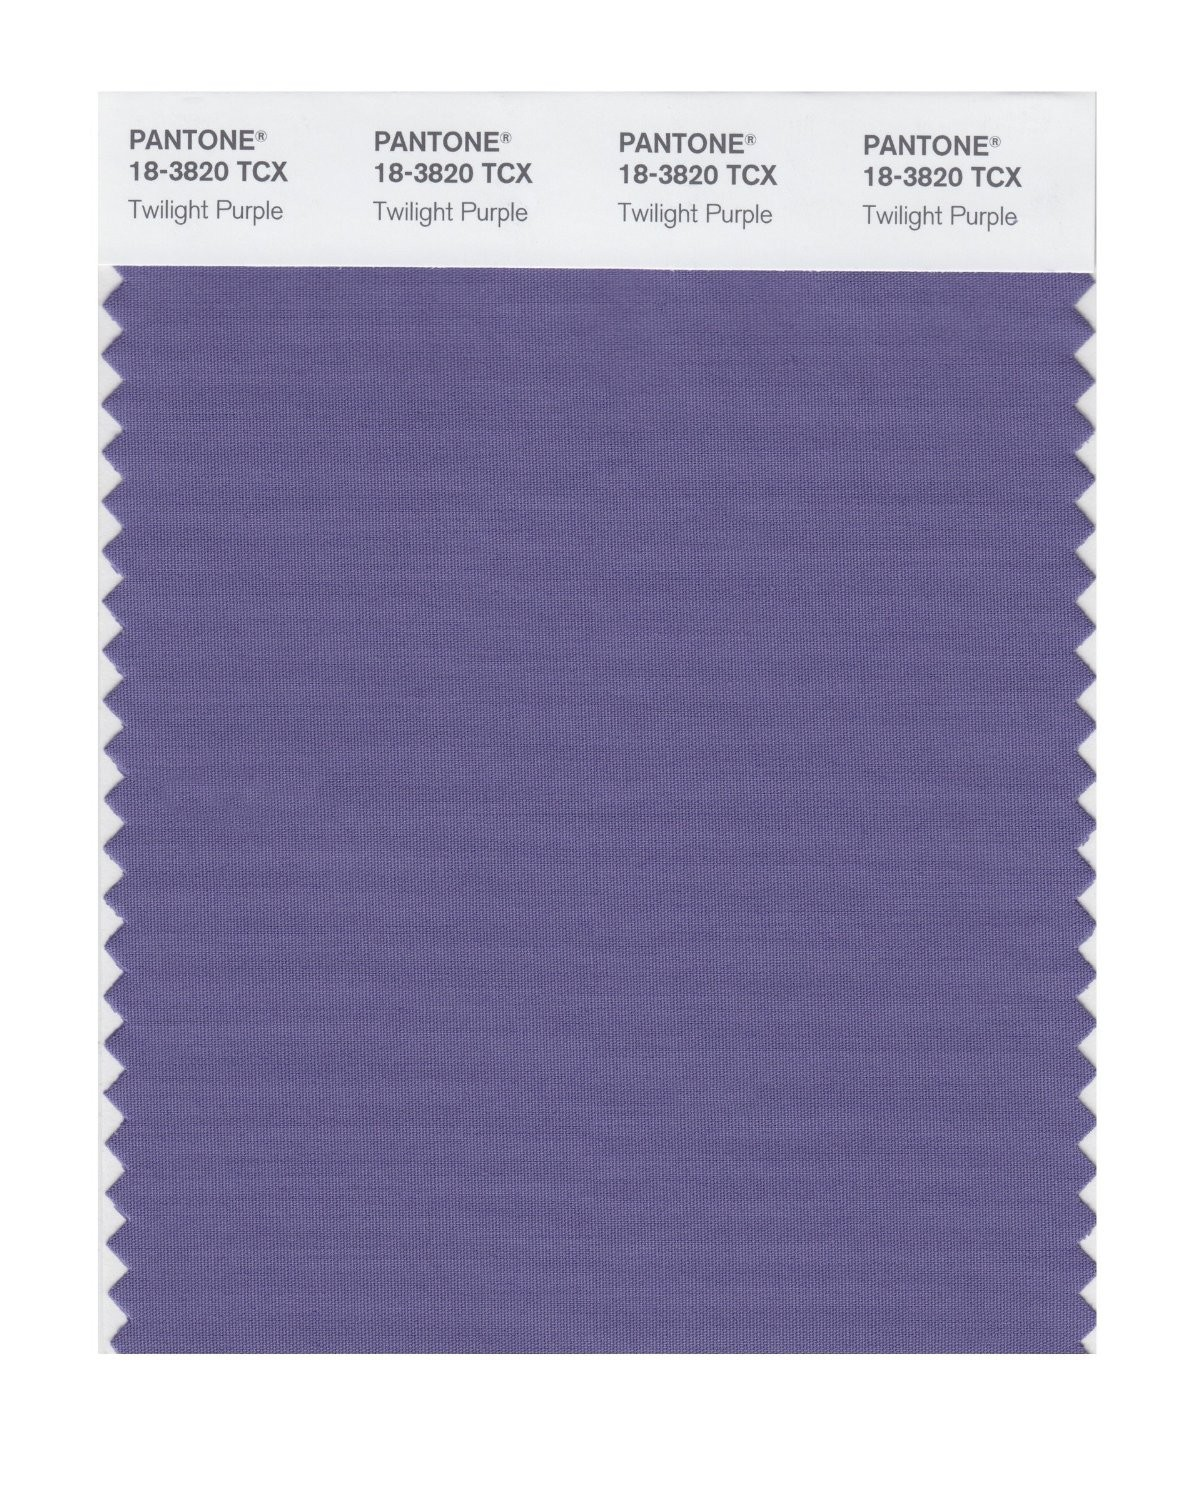 Pantone 18-3820 TCX Swatch Card Twilight Purple